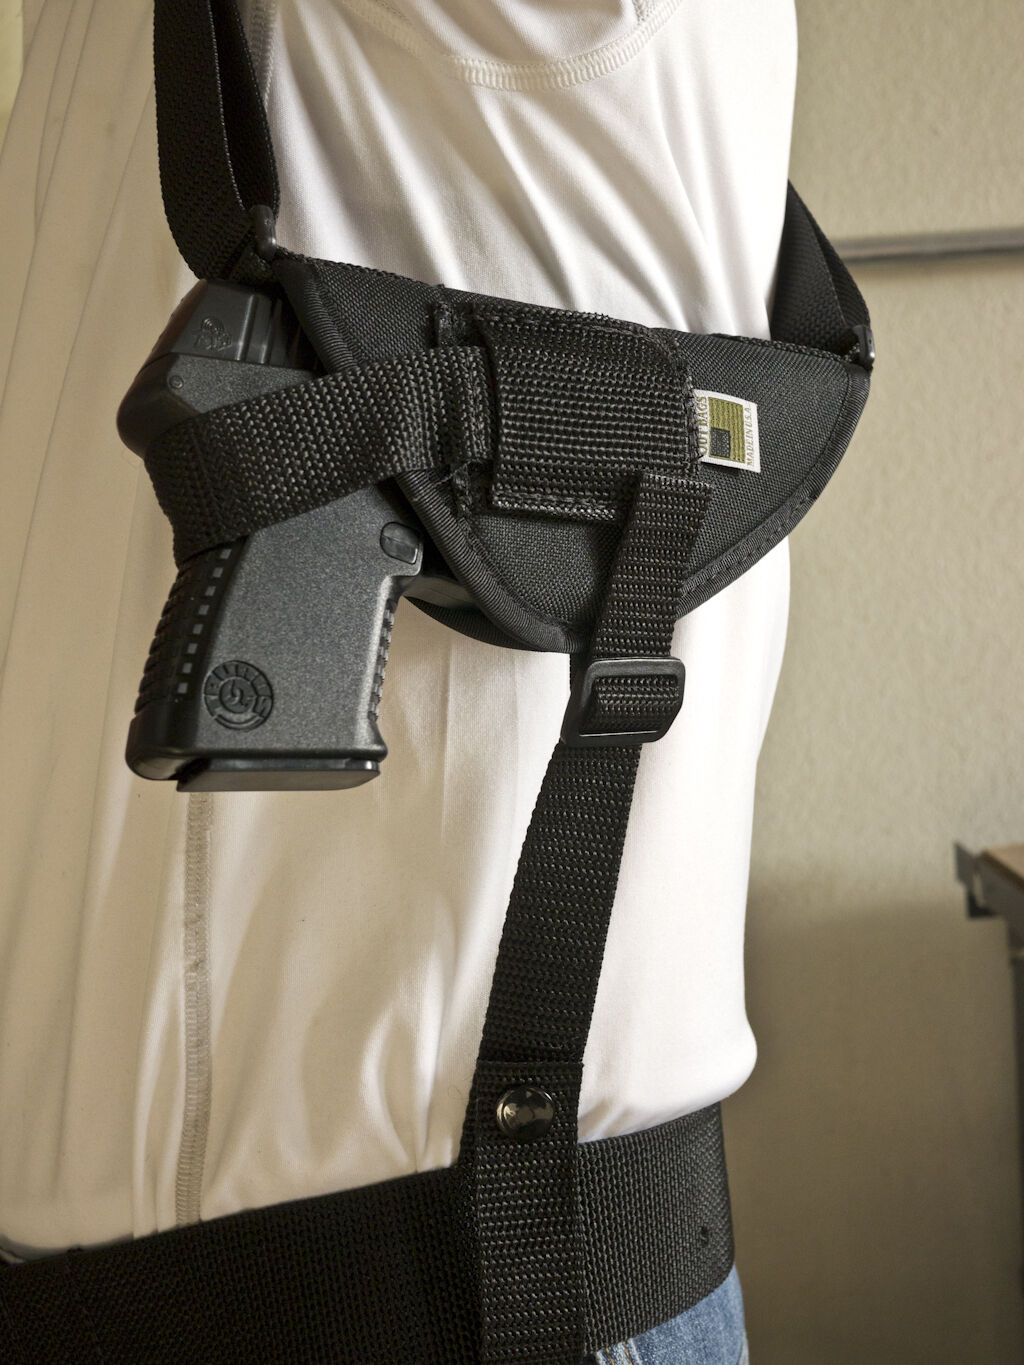 Nylon Horizontal Shoulder Holster With Double Mag Pouch for Glock 42 G42 380 for sale online